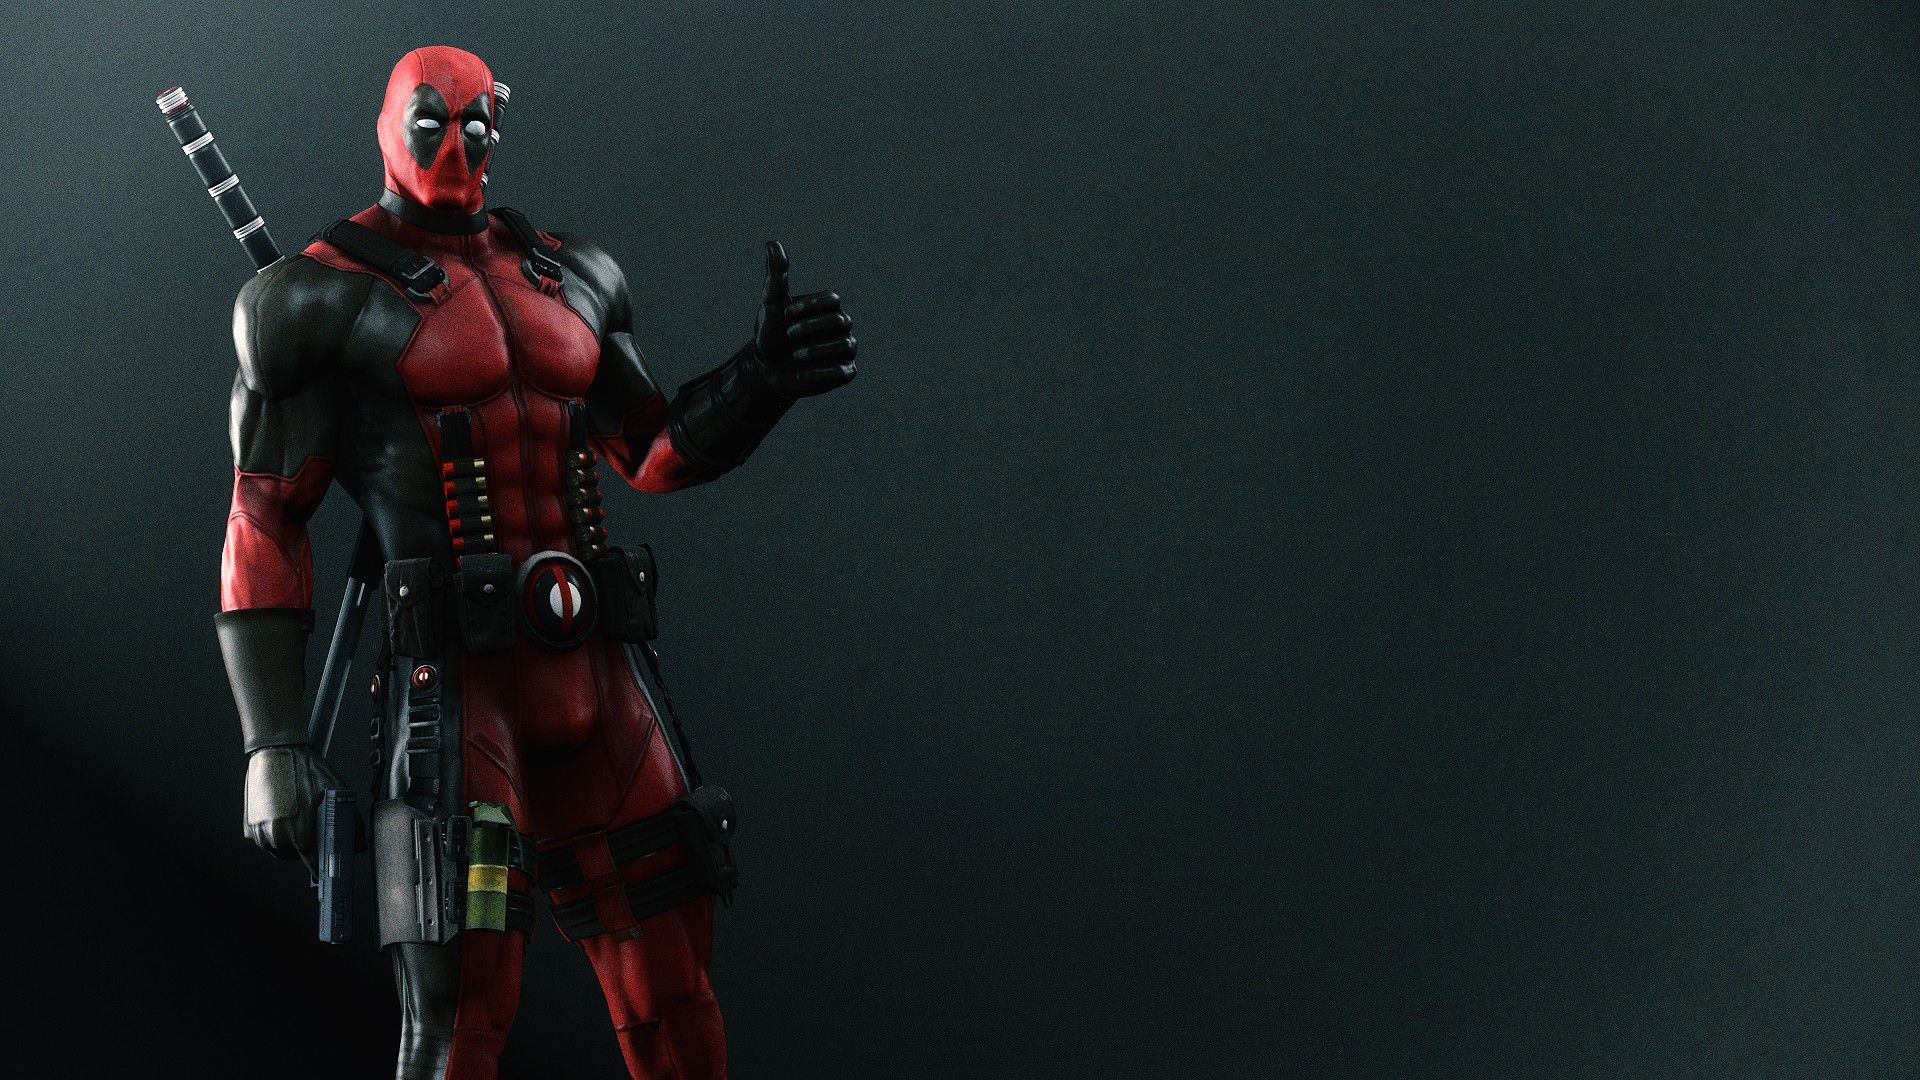 deadpool-comics-movie-wallpaper